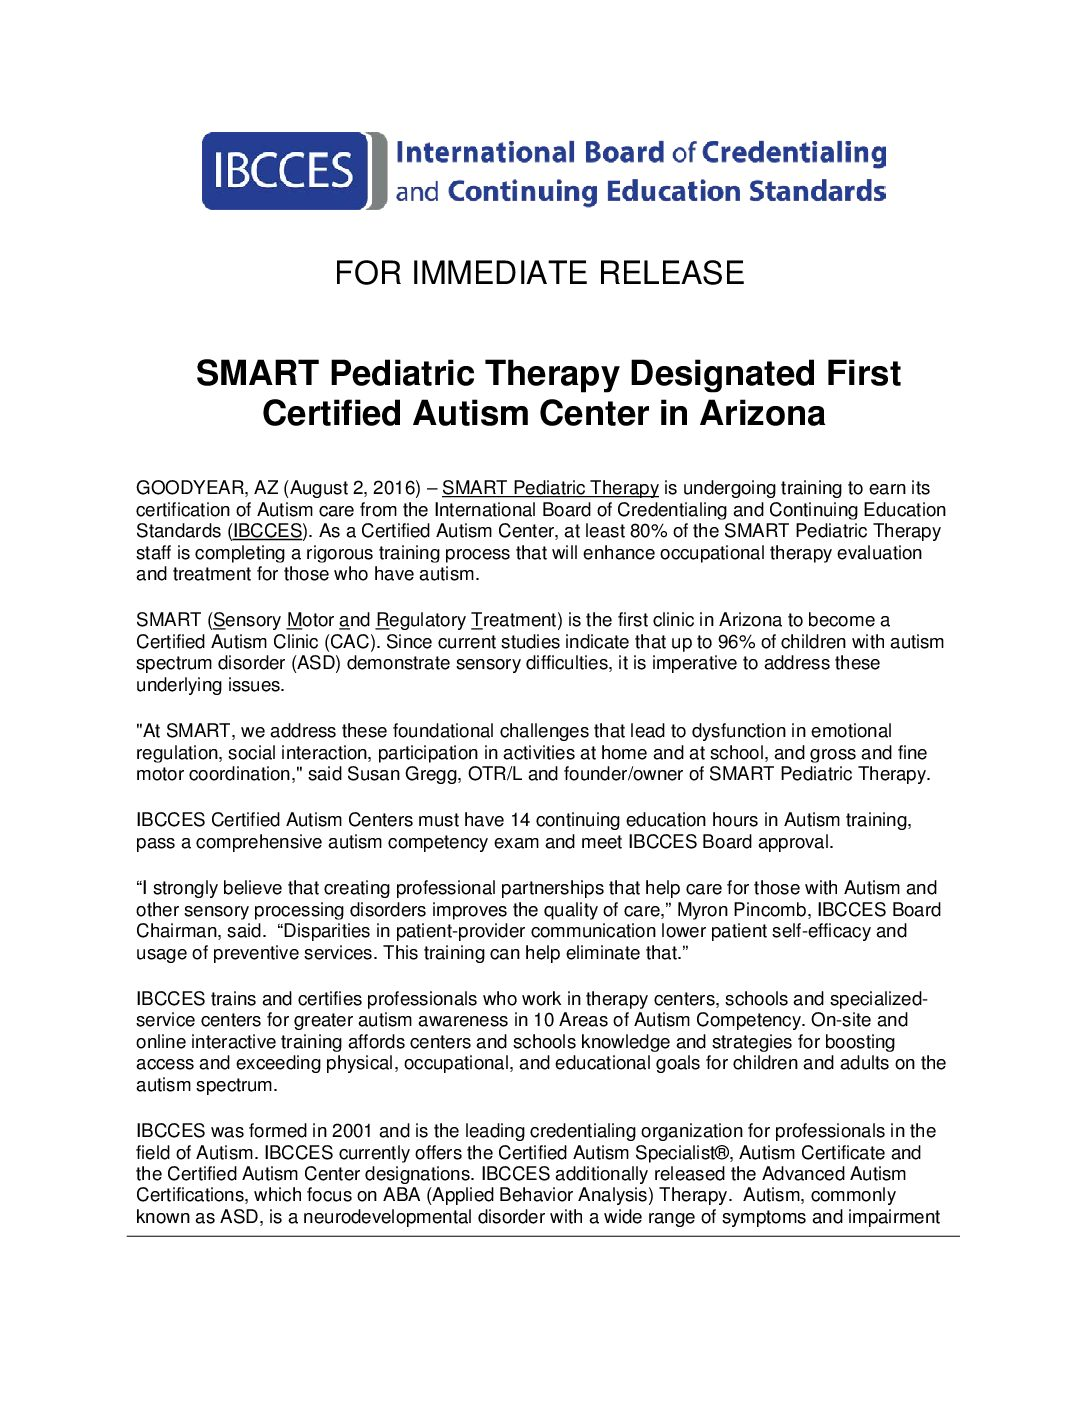 Pr 080216 Smart Pediatric Therapy Designated First Certified